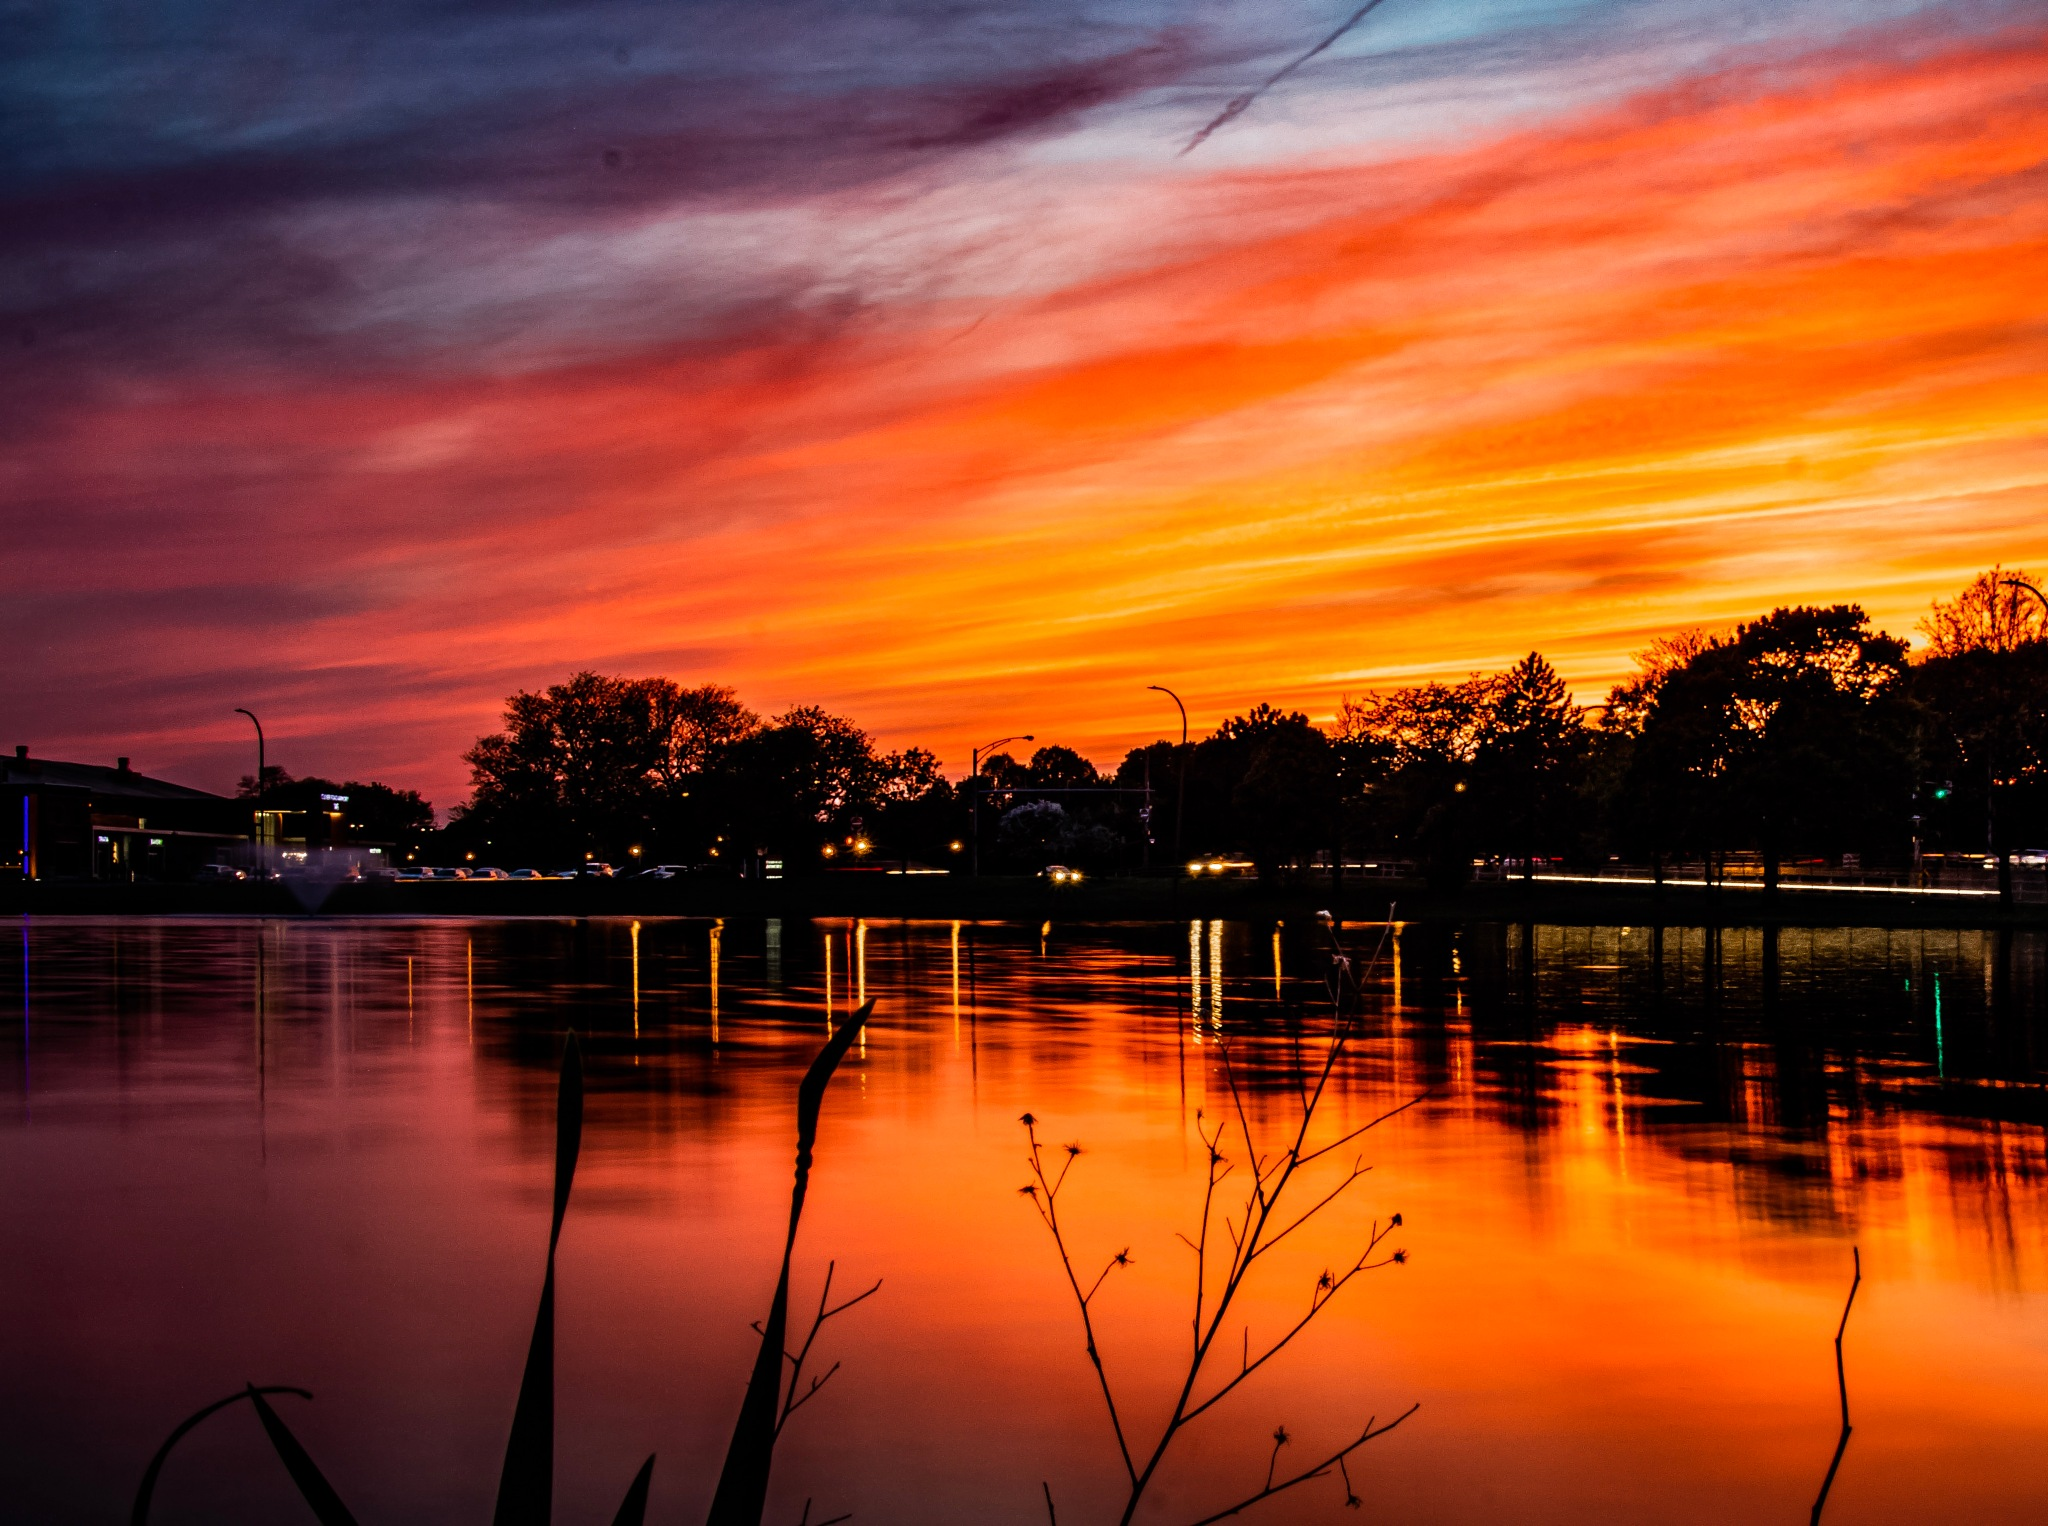 Just a sunset by Robert Eichas